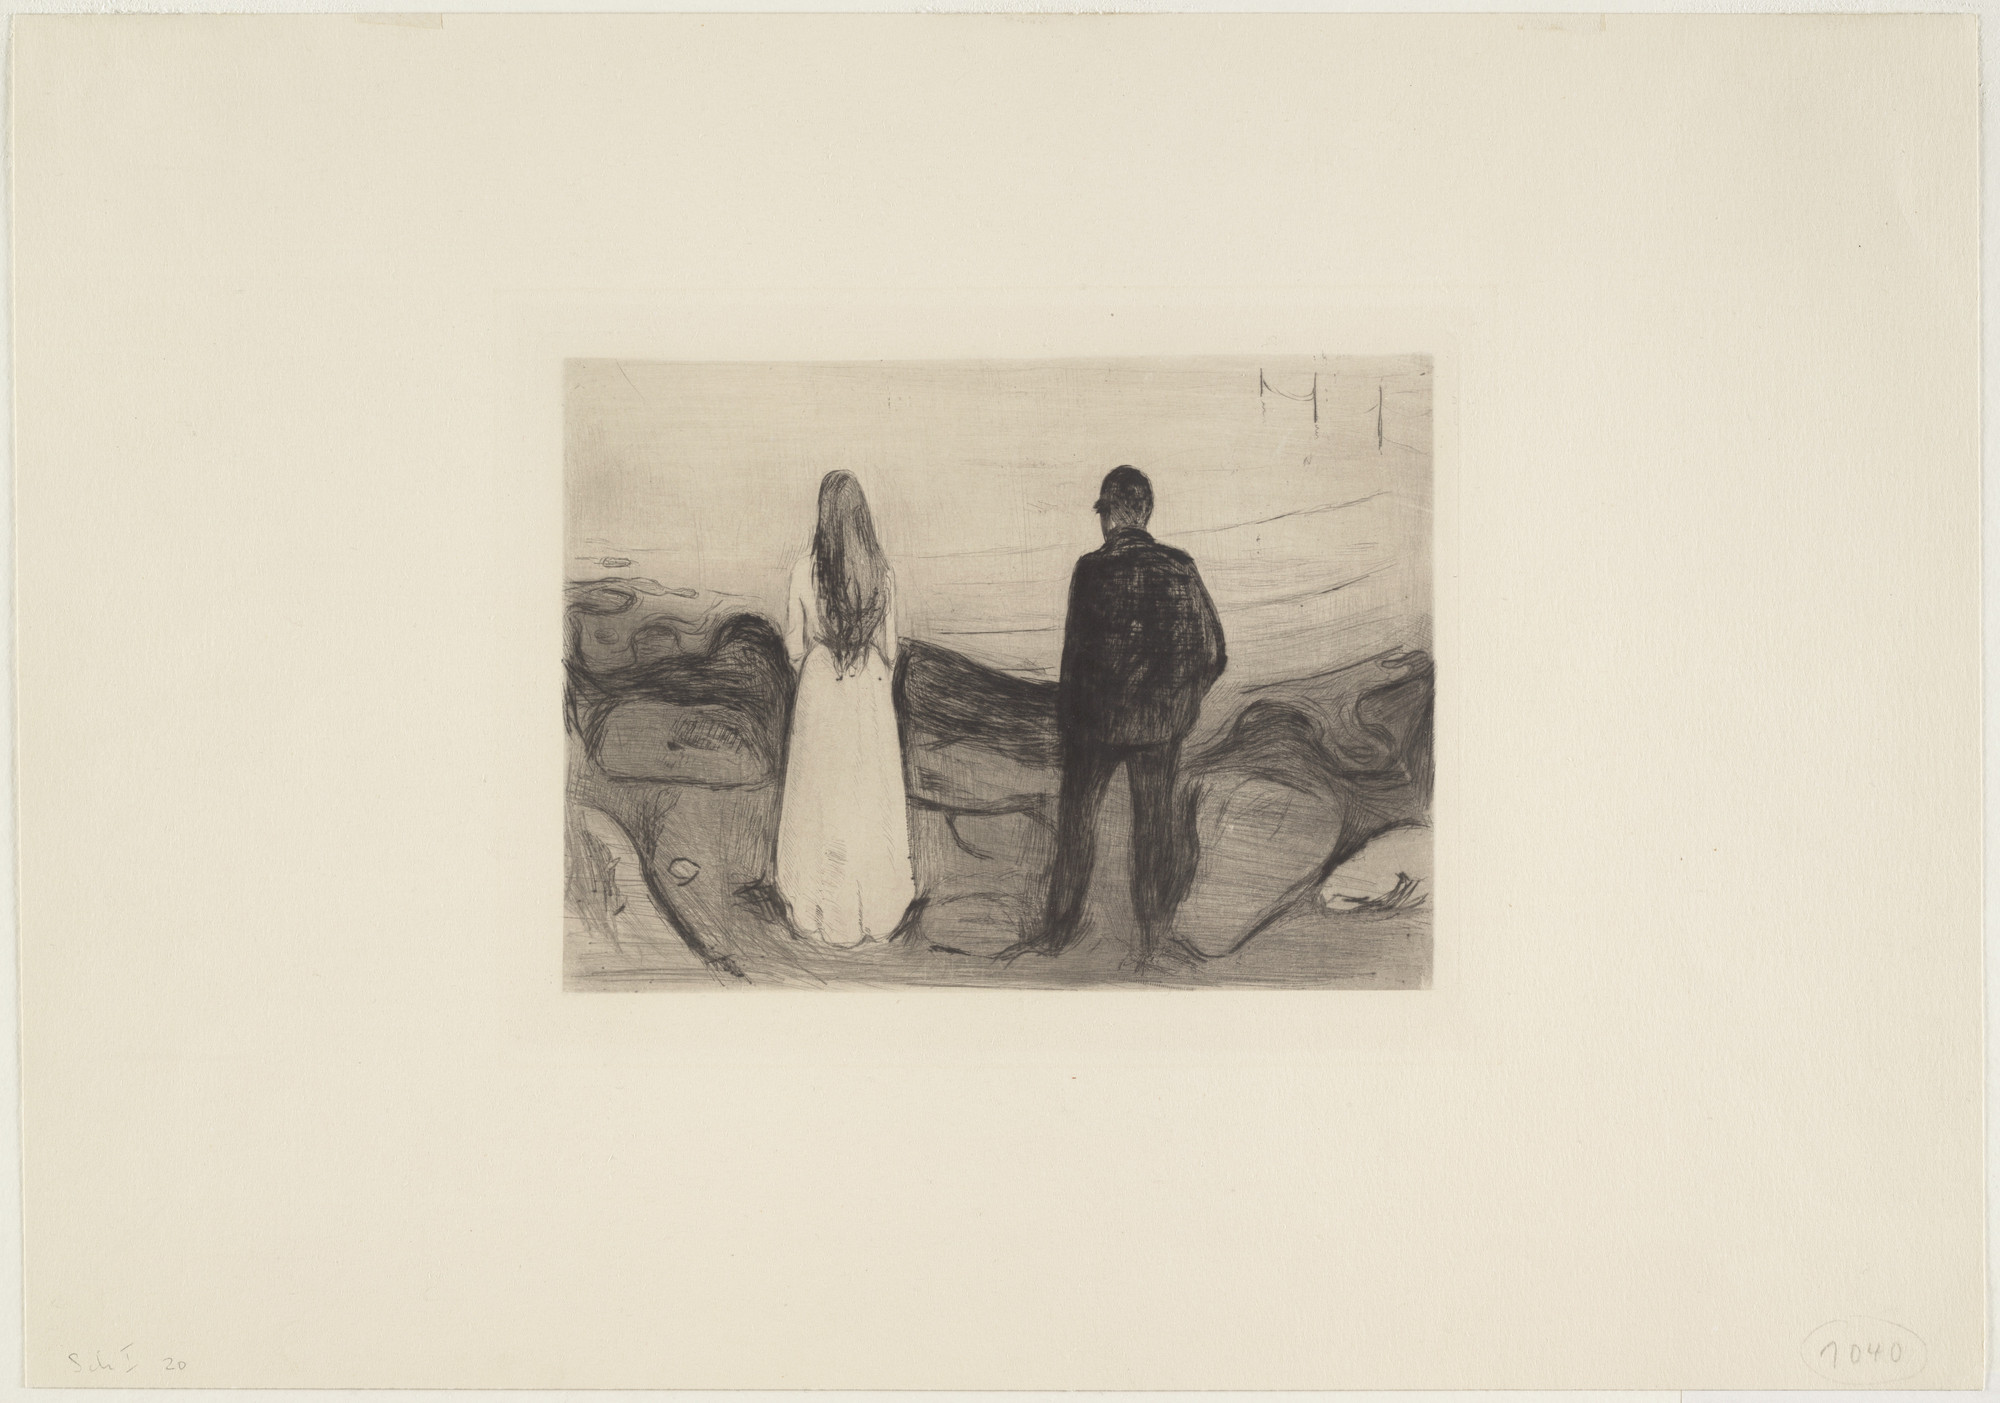 Edvard Munch. Two People. The Lonely Ones (To mennesker. De ensomme). 1894, published 1895